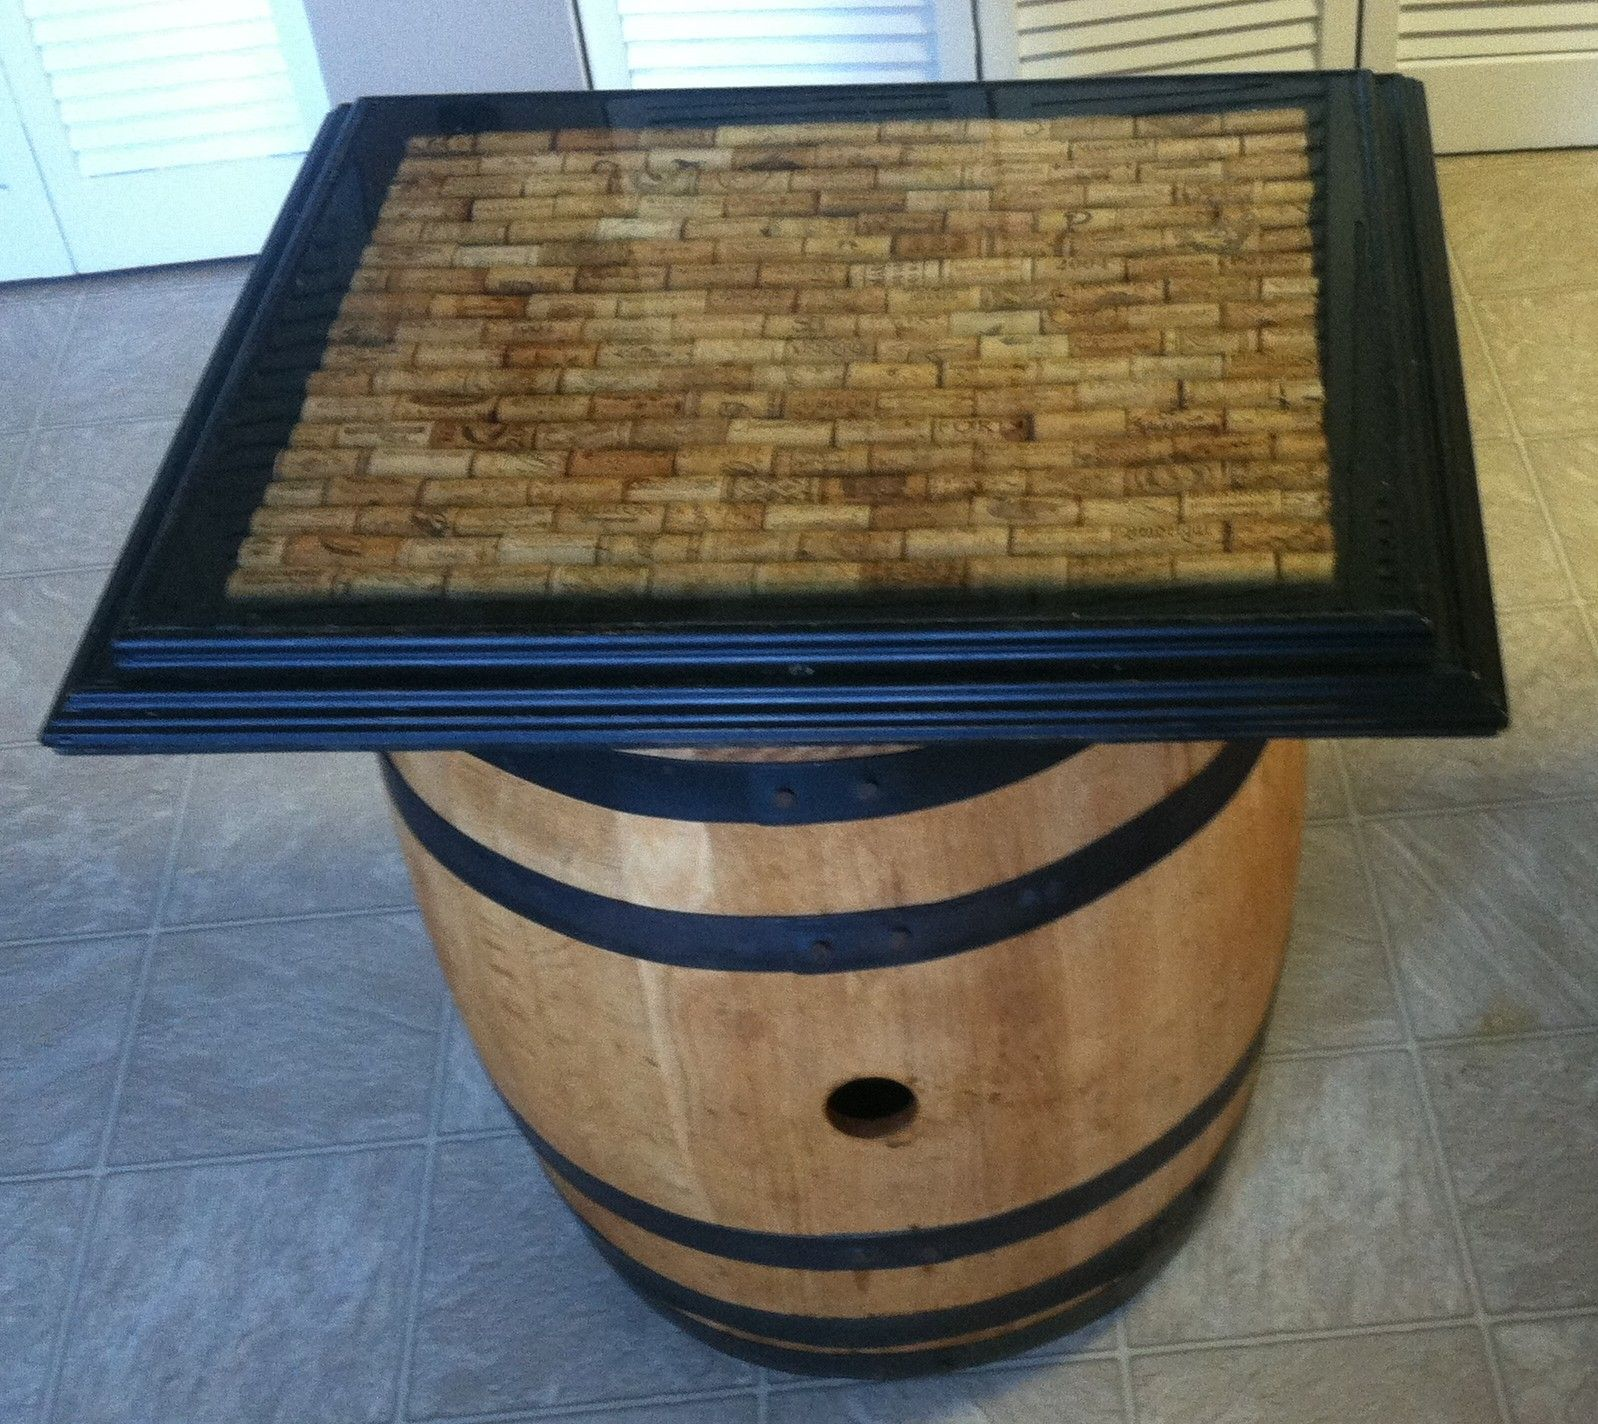 Wine Cork Table Design: Pin On Items Made Or Redone By Me